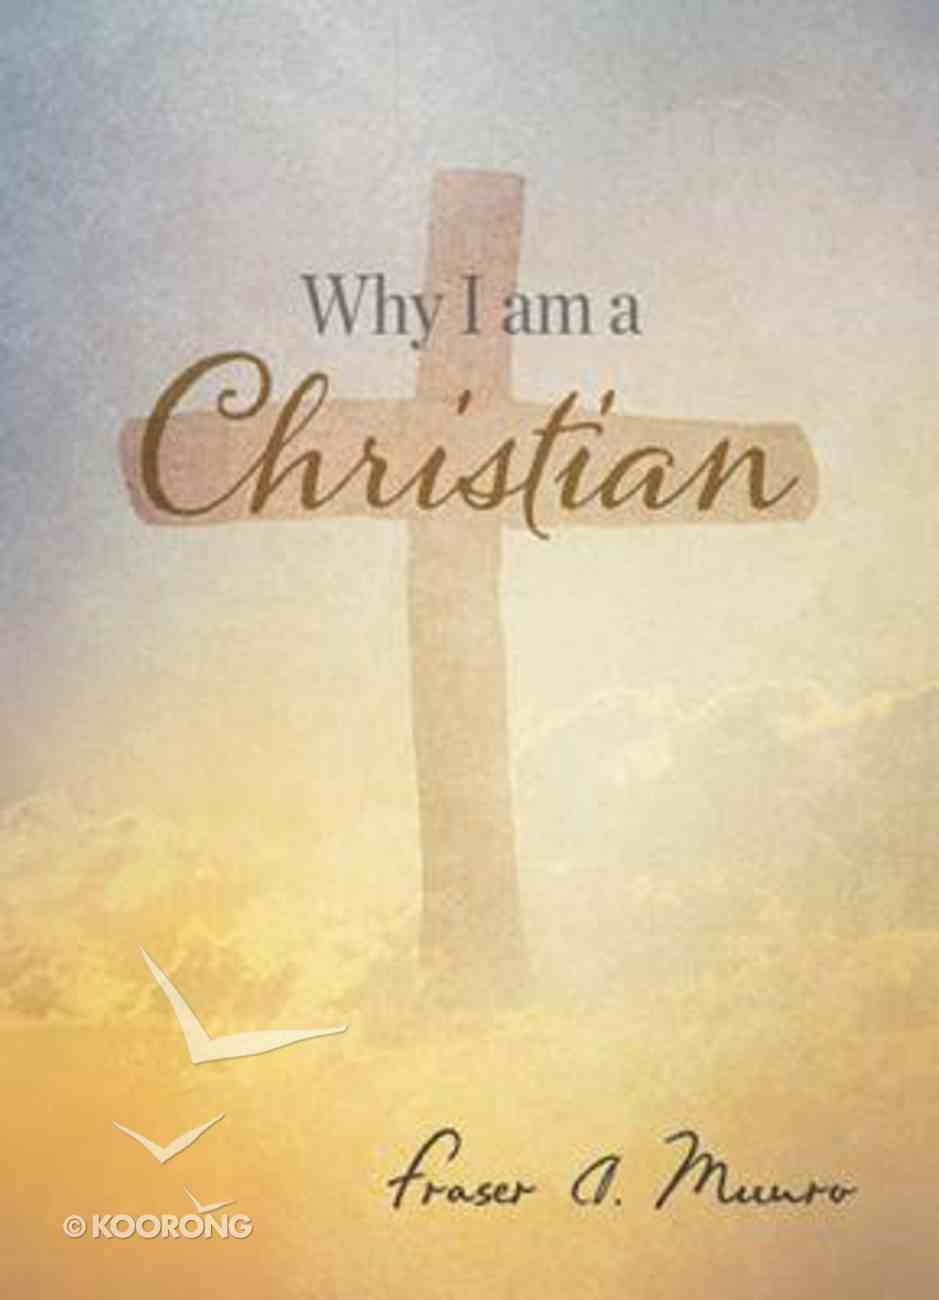 Why I Am a Christian Booklet